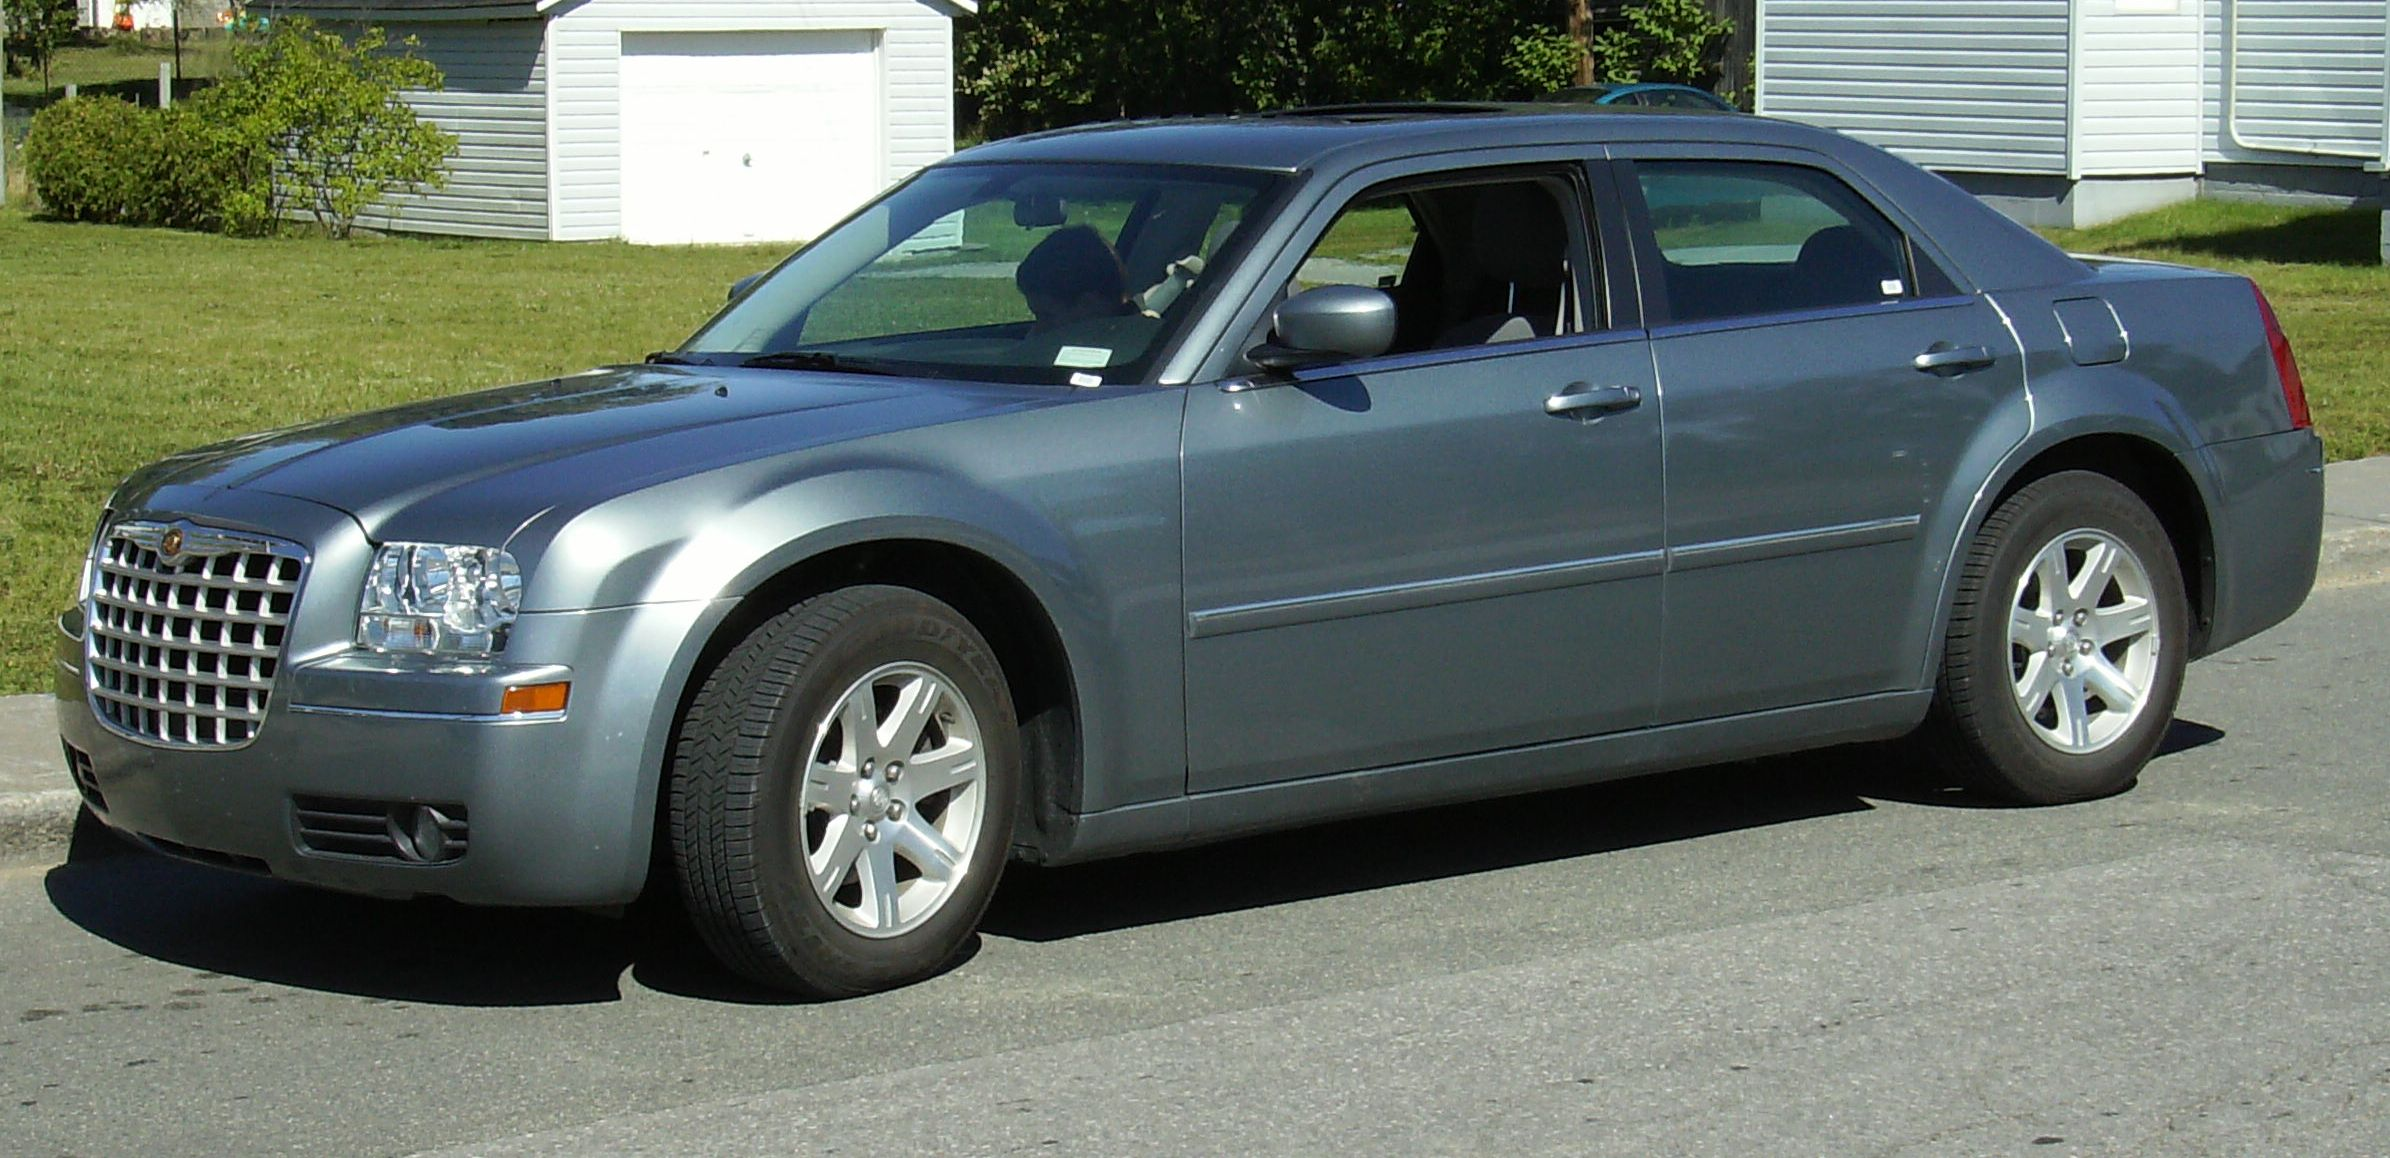 Chrysler 300 #14